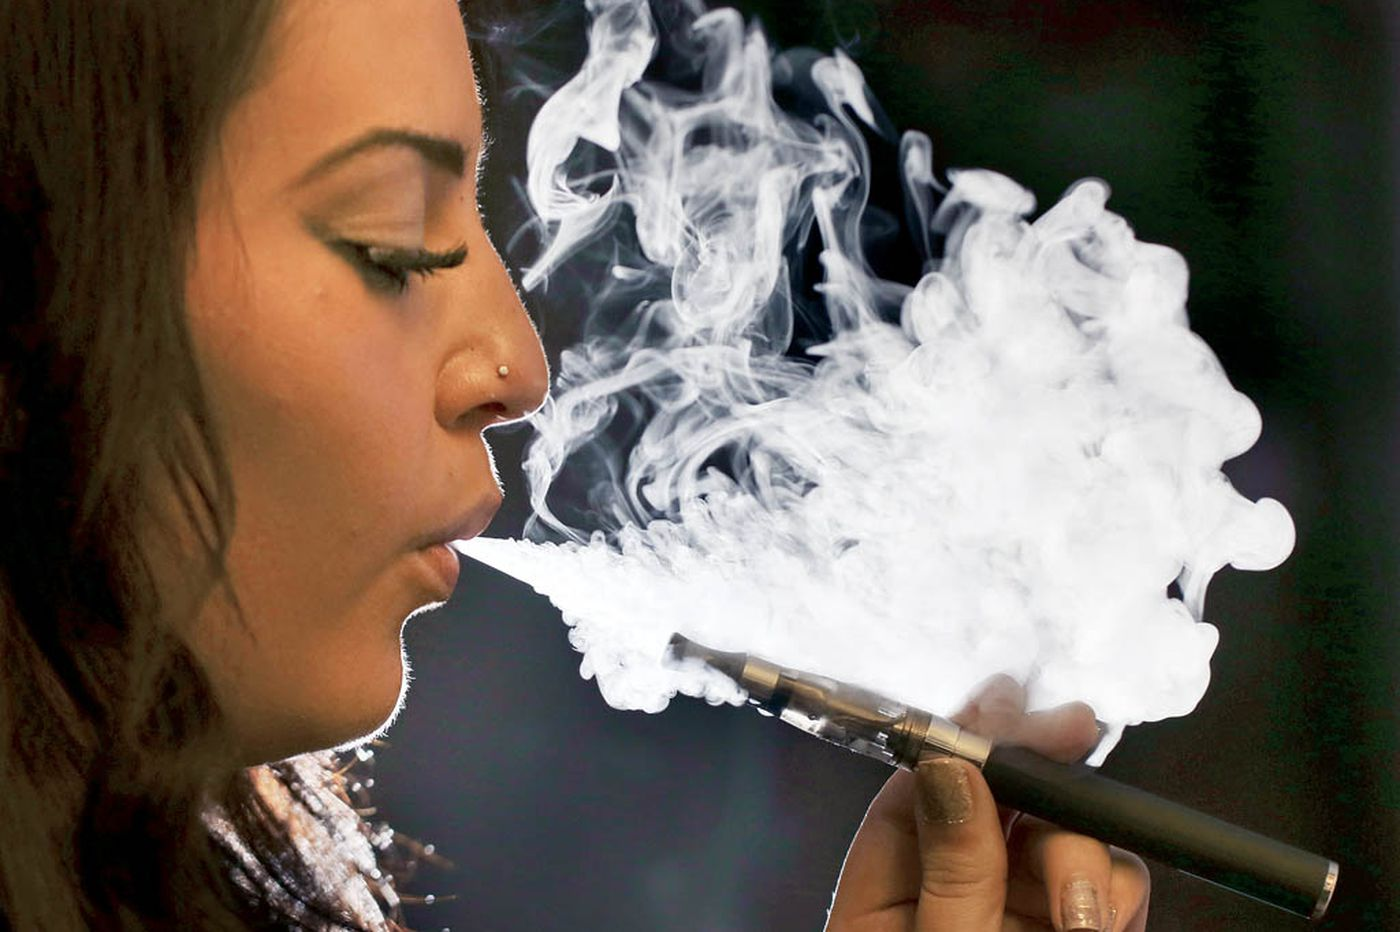 More than half of e-cig users want to quit, Rutgers study finds